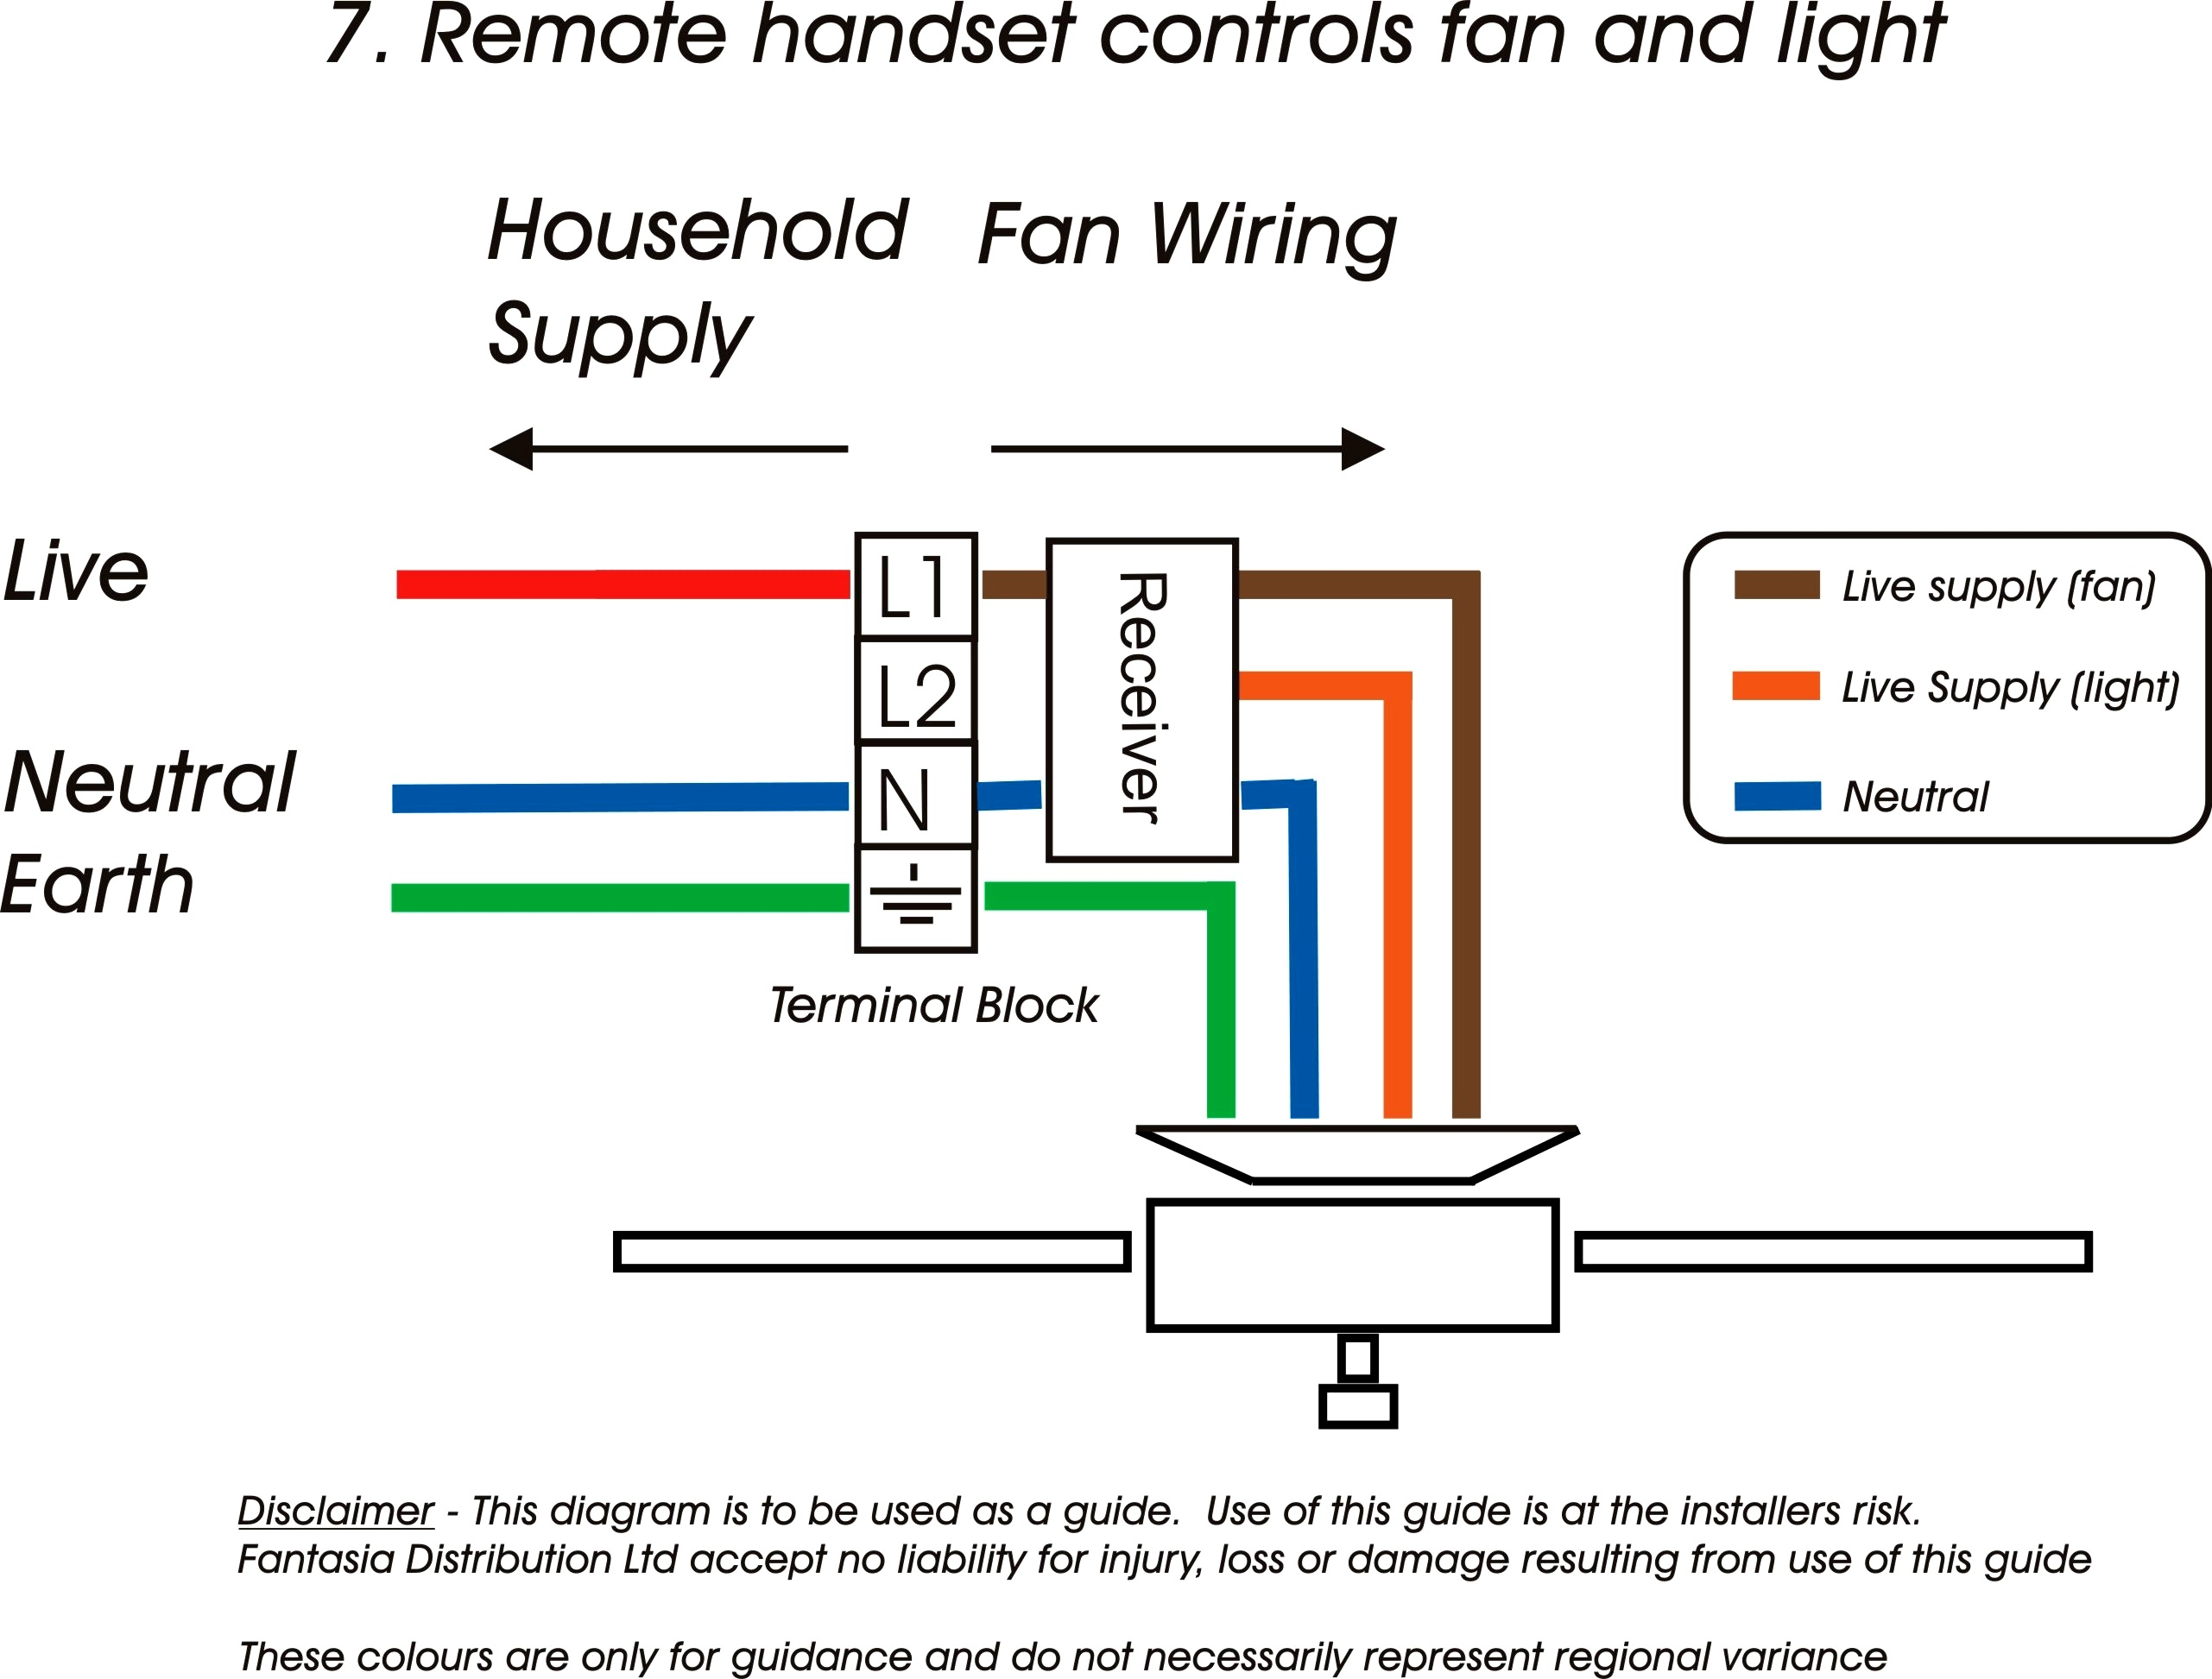 ceiling fan control switch wiring diagram Download-Home Amazing Fan Light Switch Wiring Ceiling Control Diagram With Double Wall To switch fan 14-n